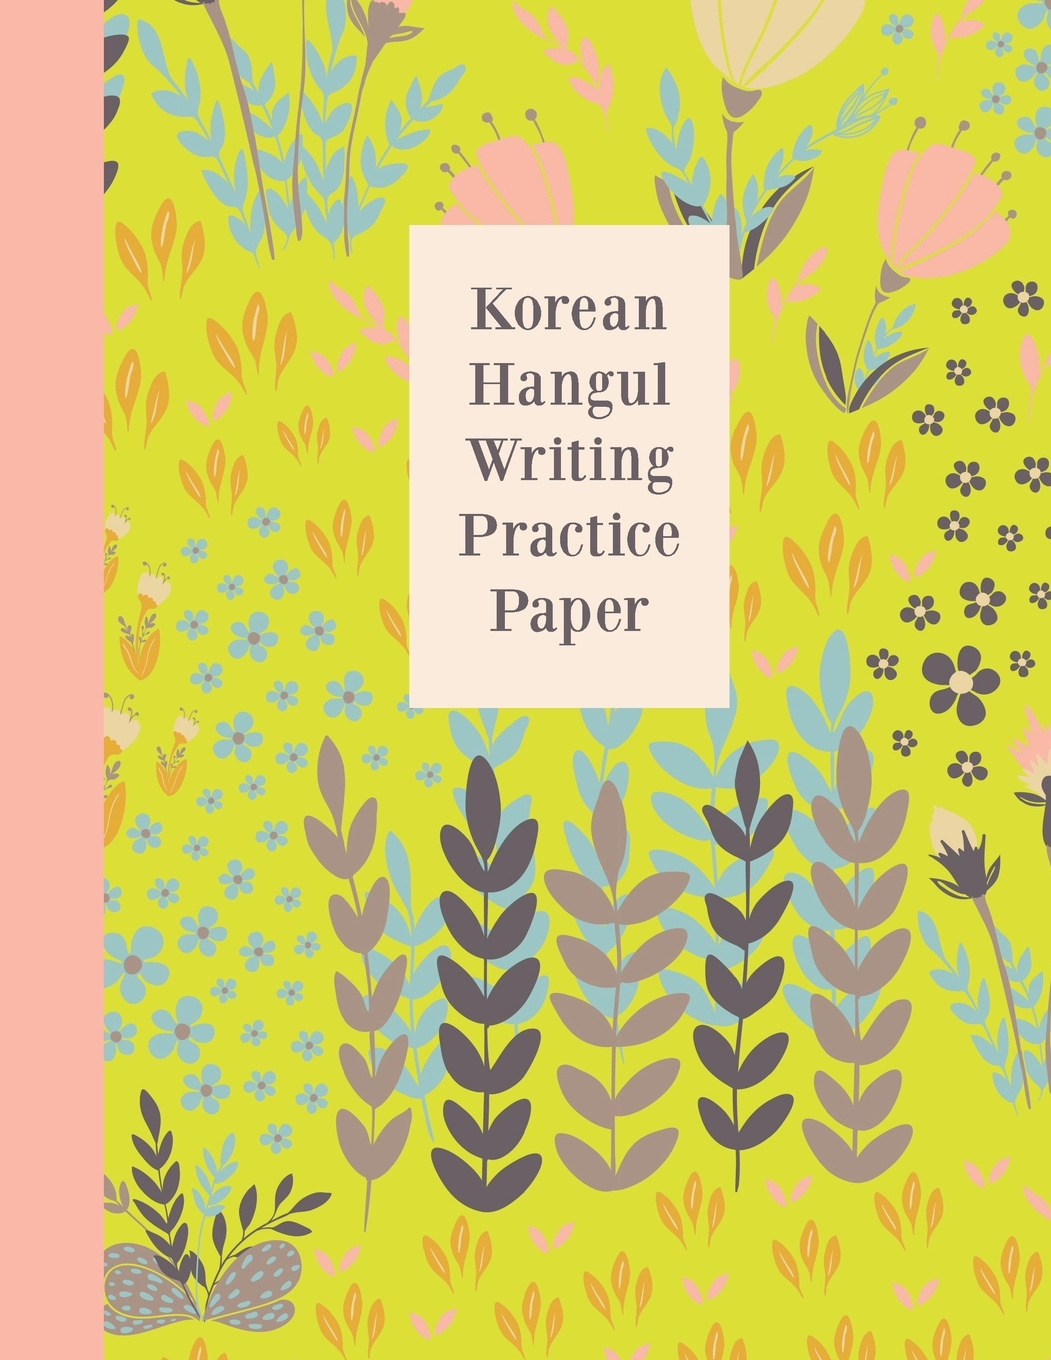 Korean Hangul Writing Practice Paper Cute Floral Pattern